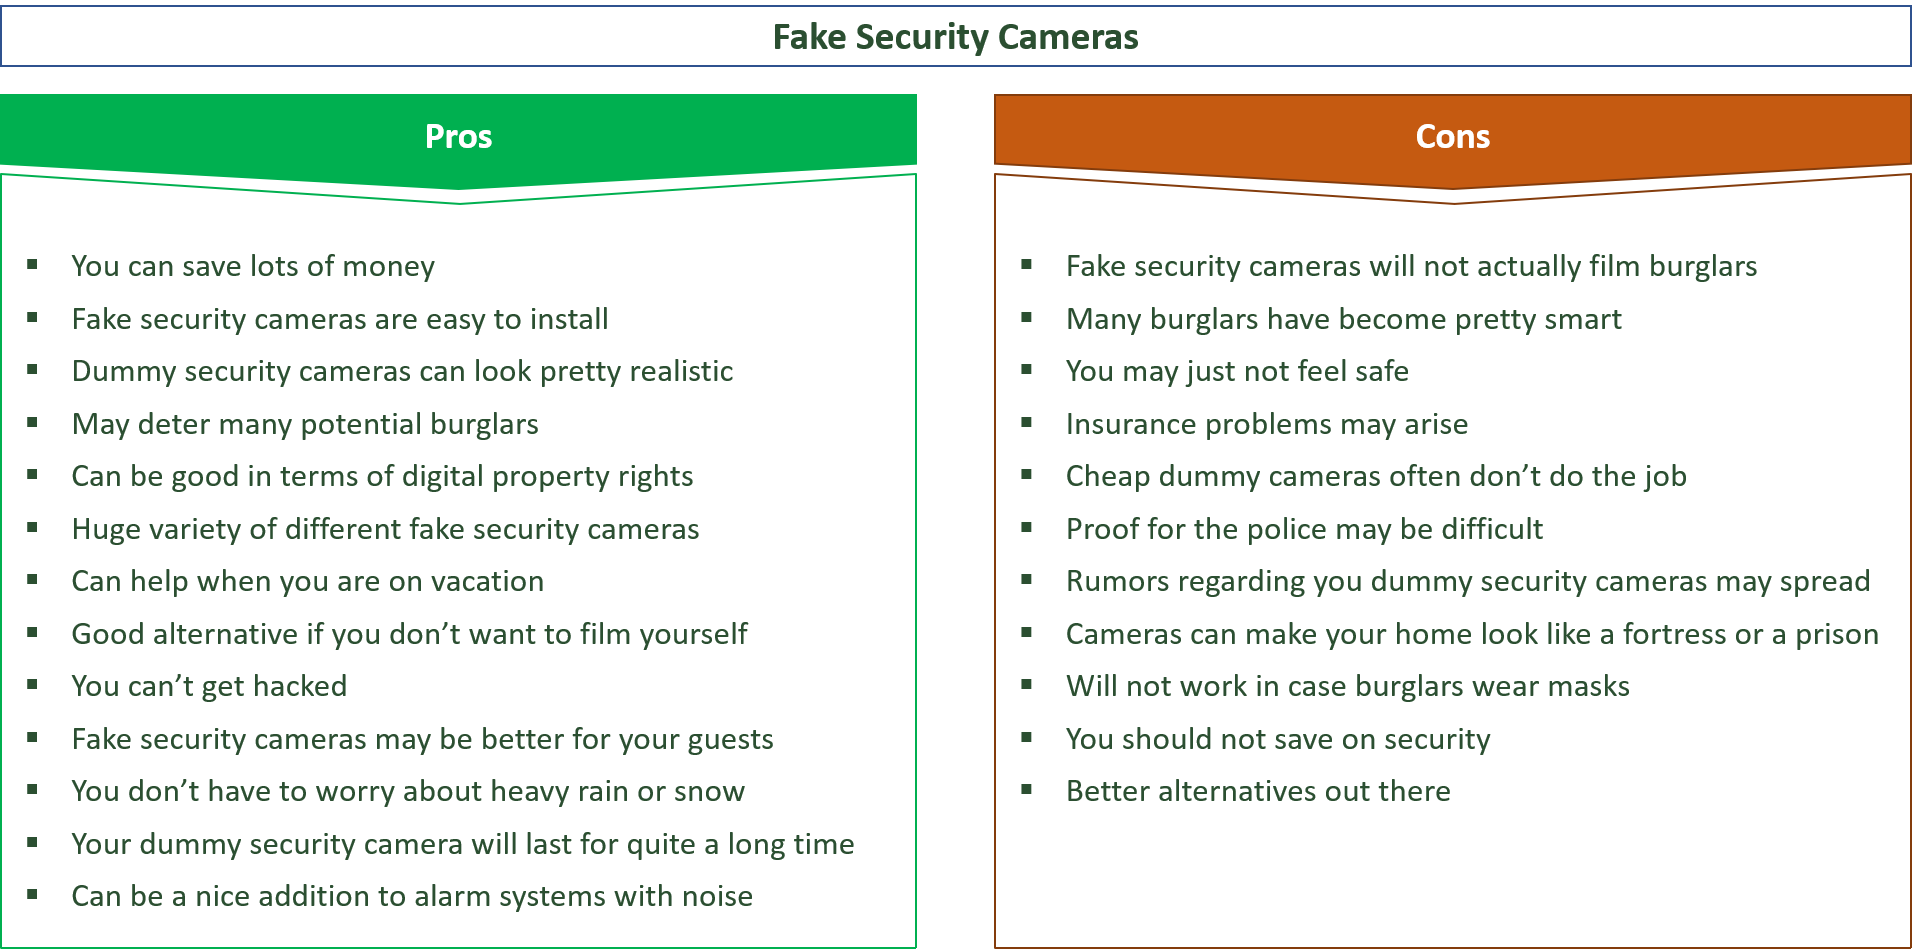 advantages and disadvantages of fake security cameras